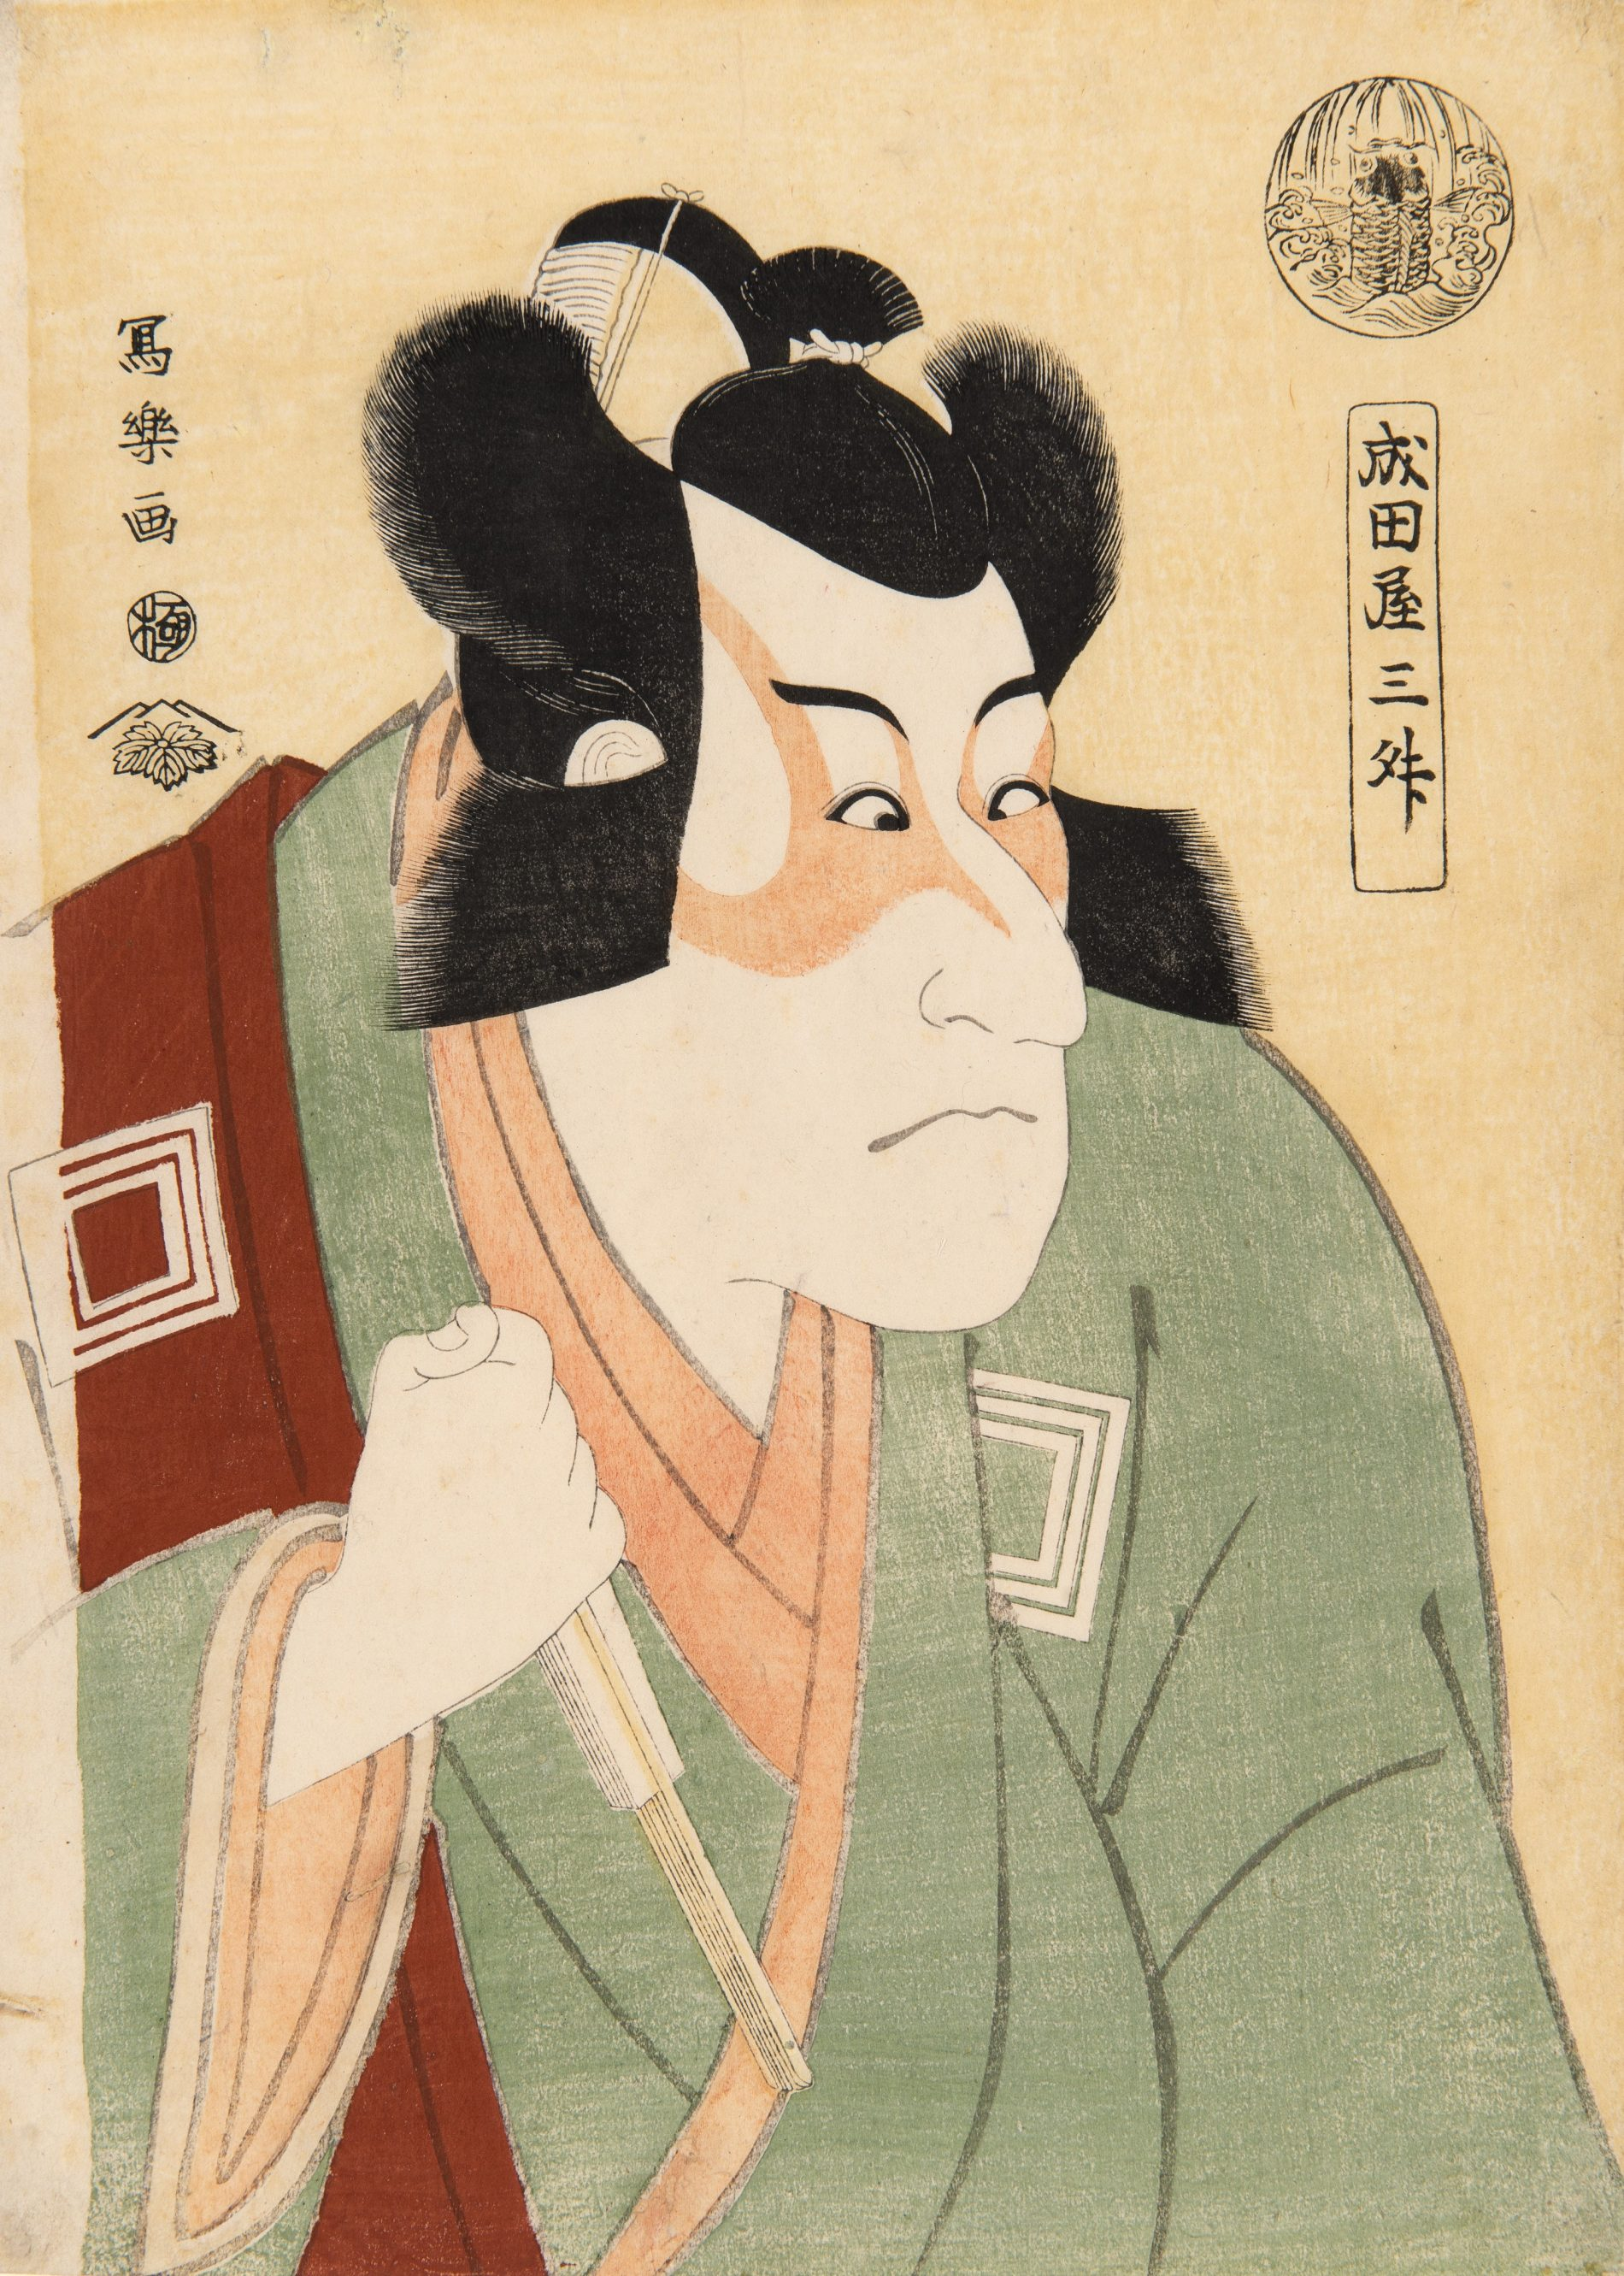 TŌSHŪSAI SHARAKU (active 1794 – 95) Ichikawa Danjūrō VI as Arakawa Tarō Takesada , 11/1794 . Color woodblock print, 13 x 9¼ in ches. Image courtesy of Gibbes Museum of Art